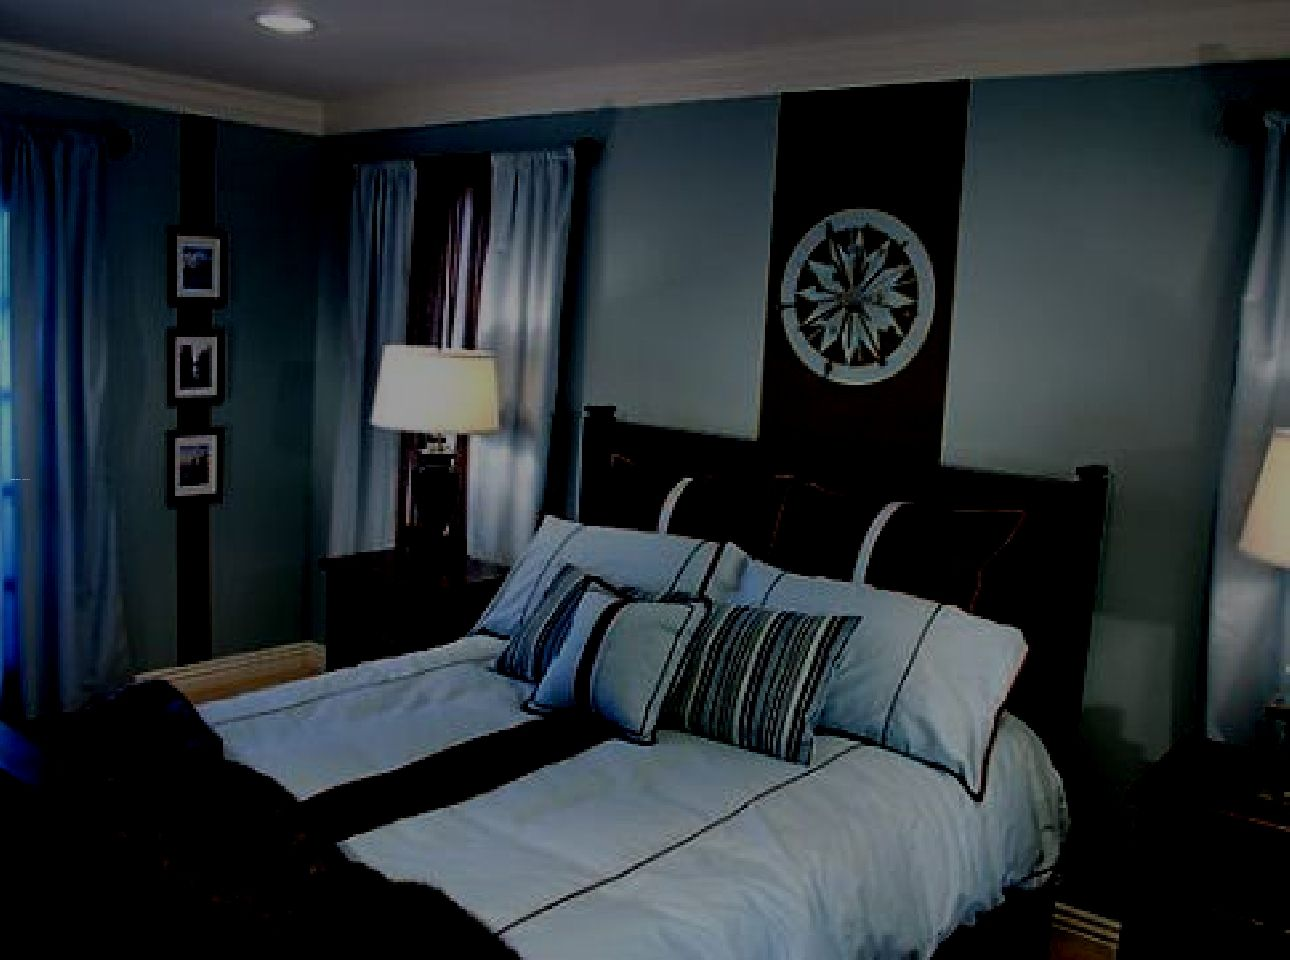 Bedroom Decorating Ideas In Blue And Brown Color 2014 Wallpaper